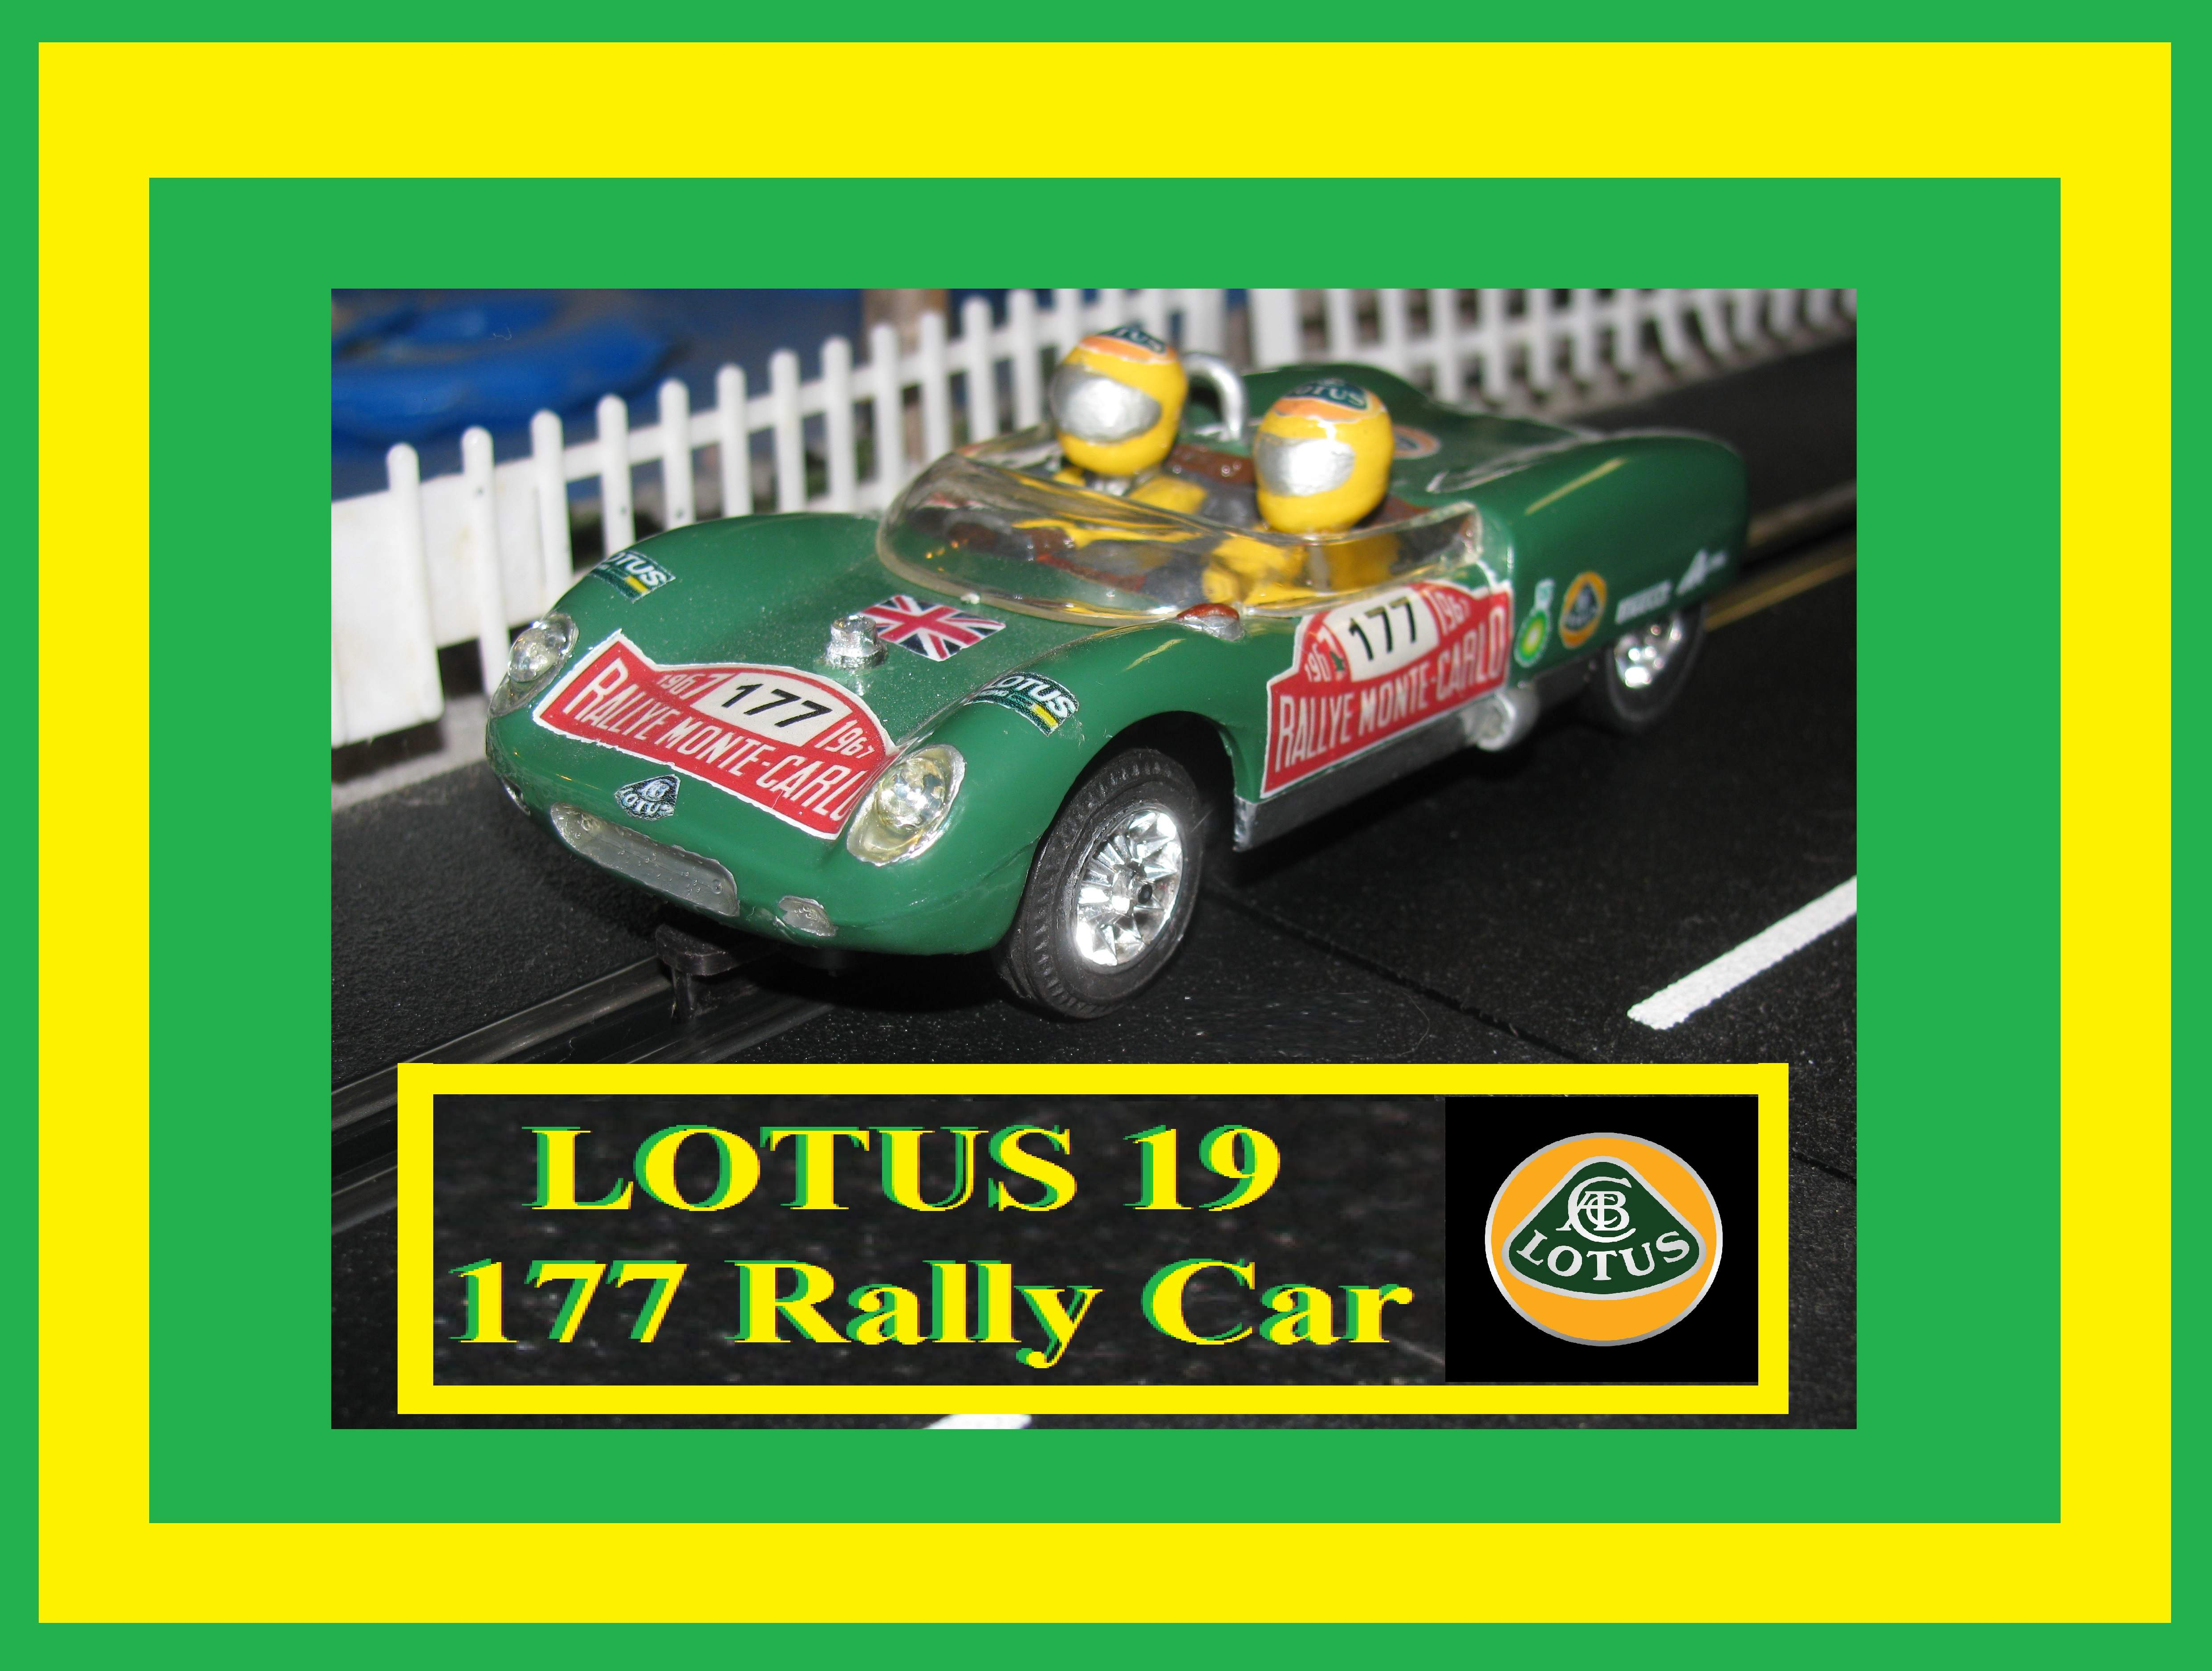 * SOLD * Vintage Strombecker LOTUS 19 Rally Car #177 1/32 SLOT CAR Rallye Monte Carlo